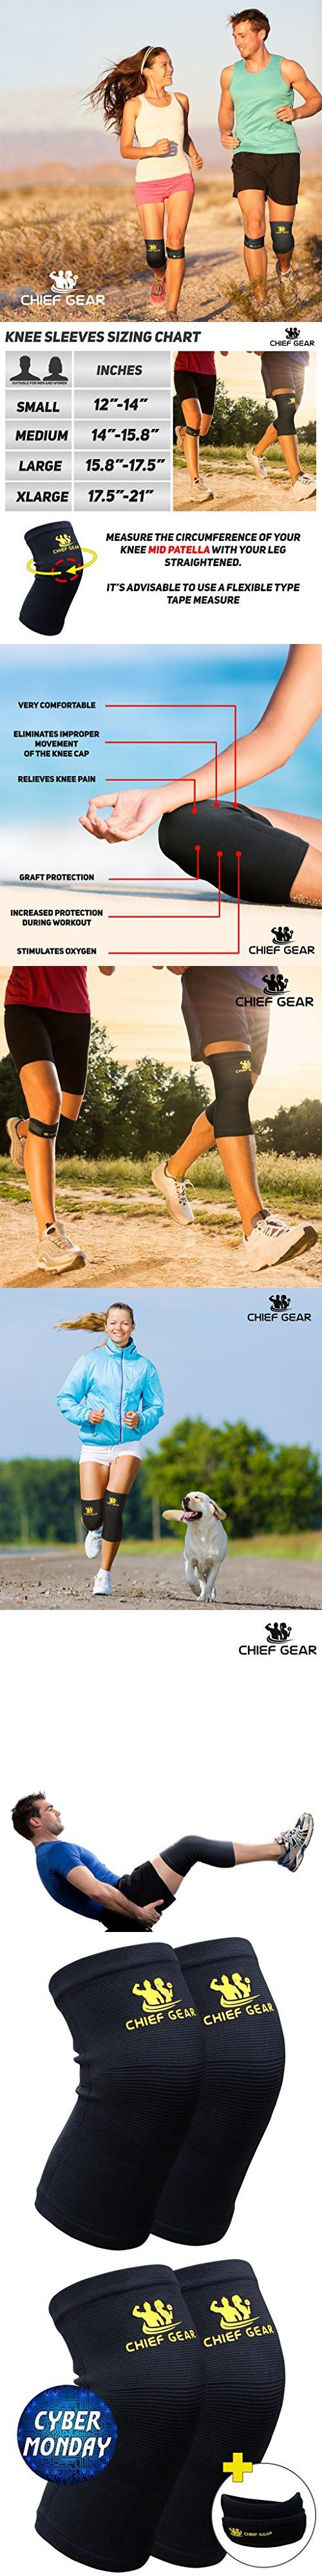 Knee Compression Sleeves (1 Pair) with Free 1 Patella Knee Brace By Chief Gear- Knee Support & Compression, Protects Patella, Fast Recovery & Pain Relief- Both Women & Men